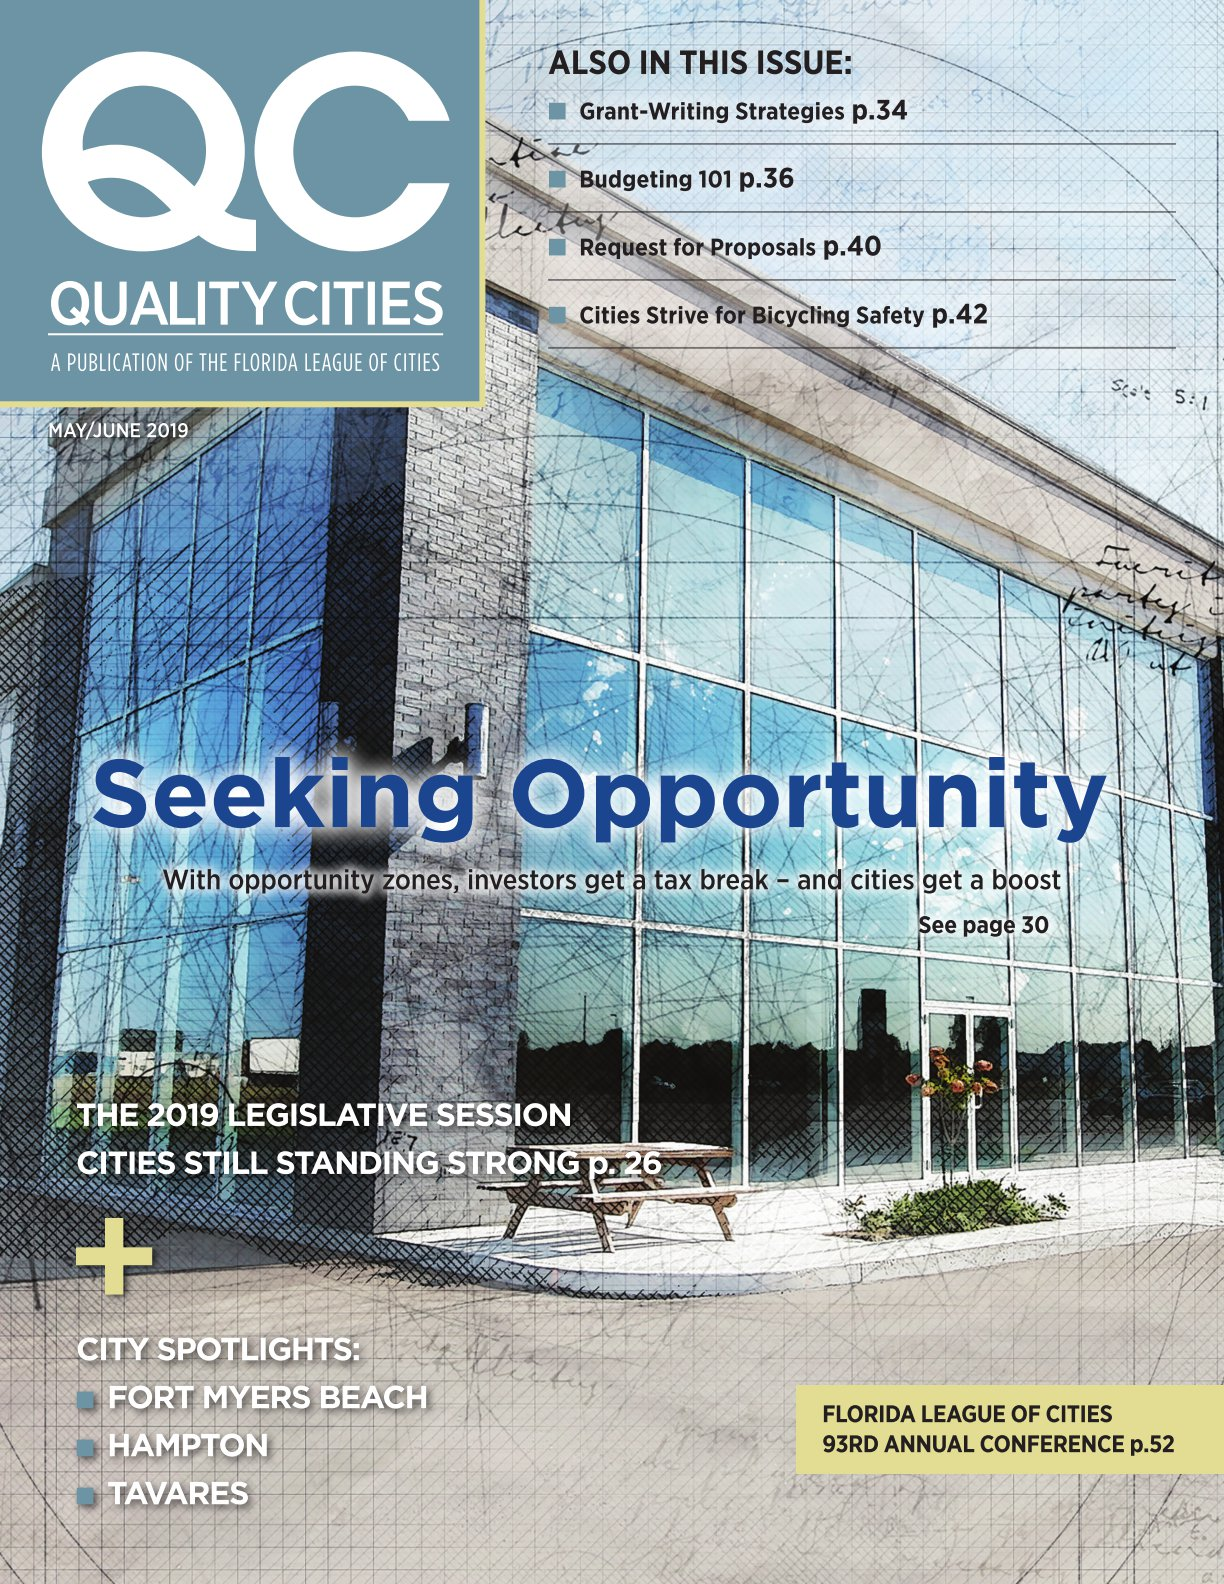 Cover of Quality Cities Florida League of Cities magazine